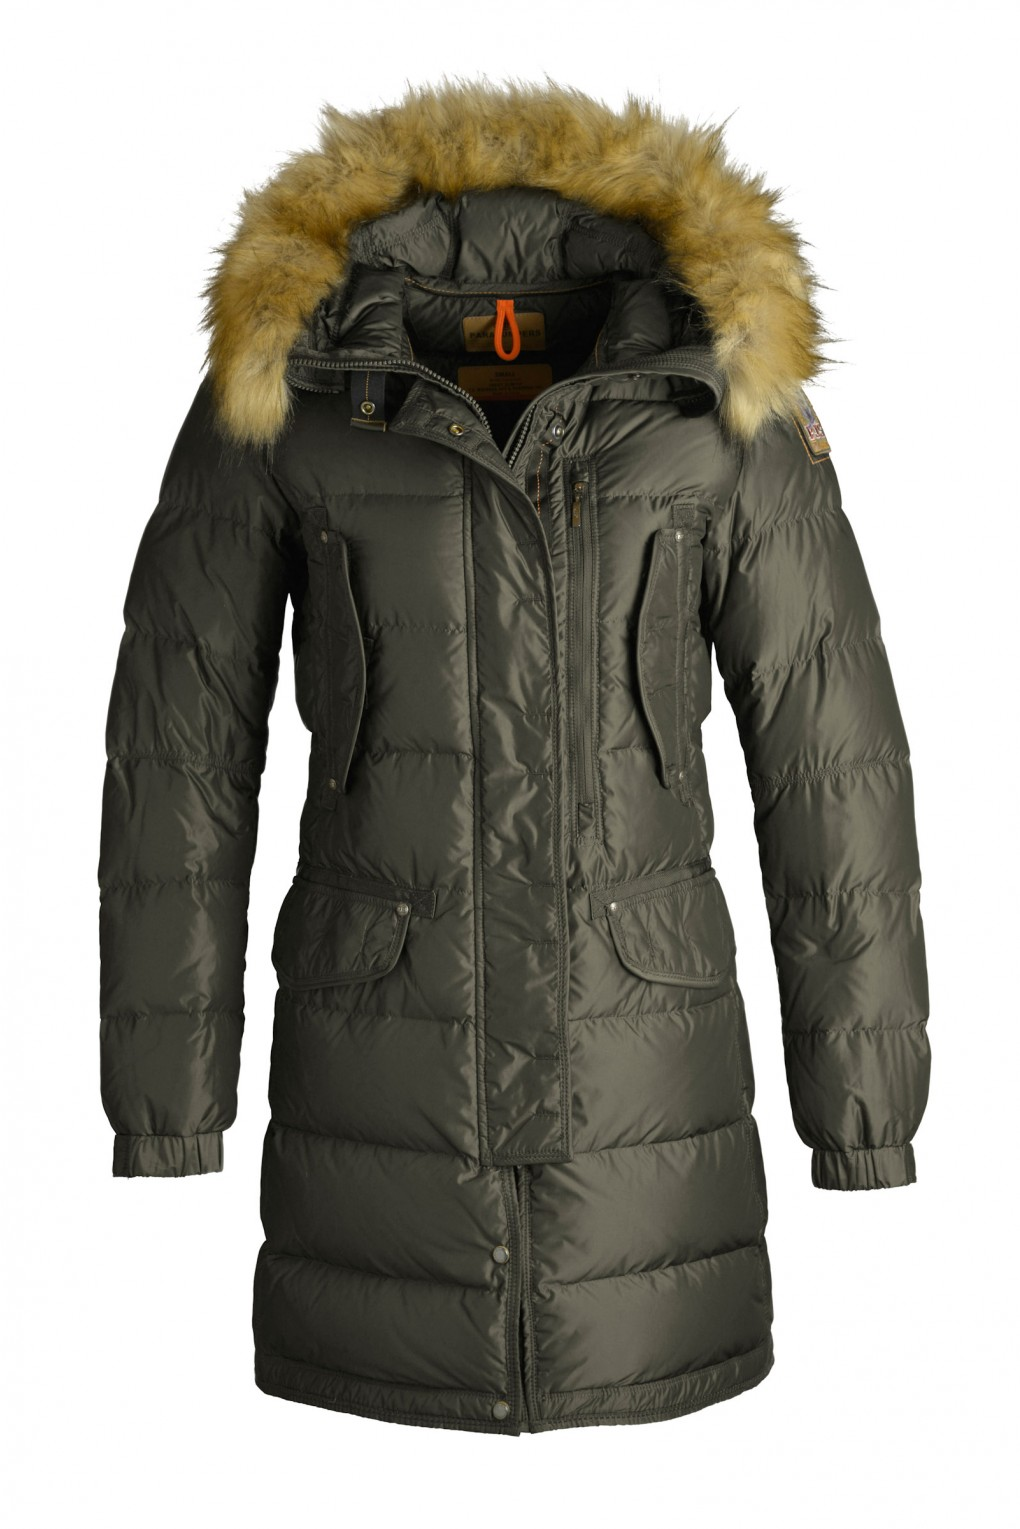 parajumpers HARRASEEKET ECO woman outerwear Army